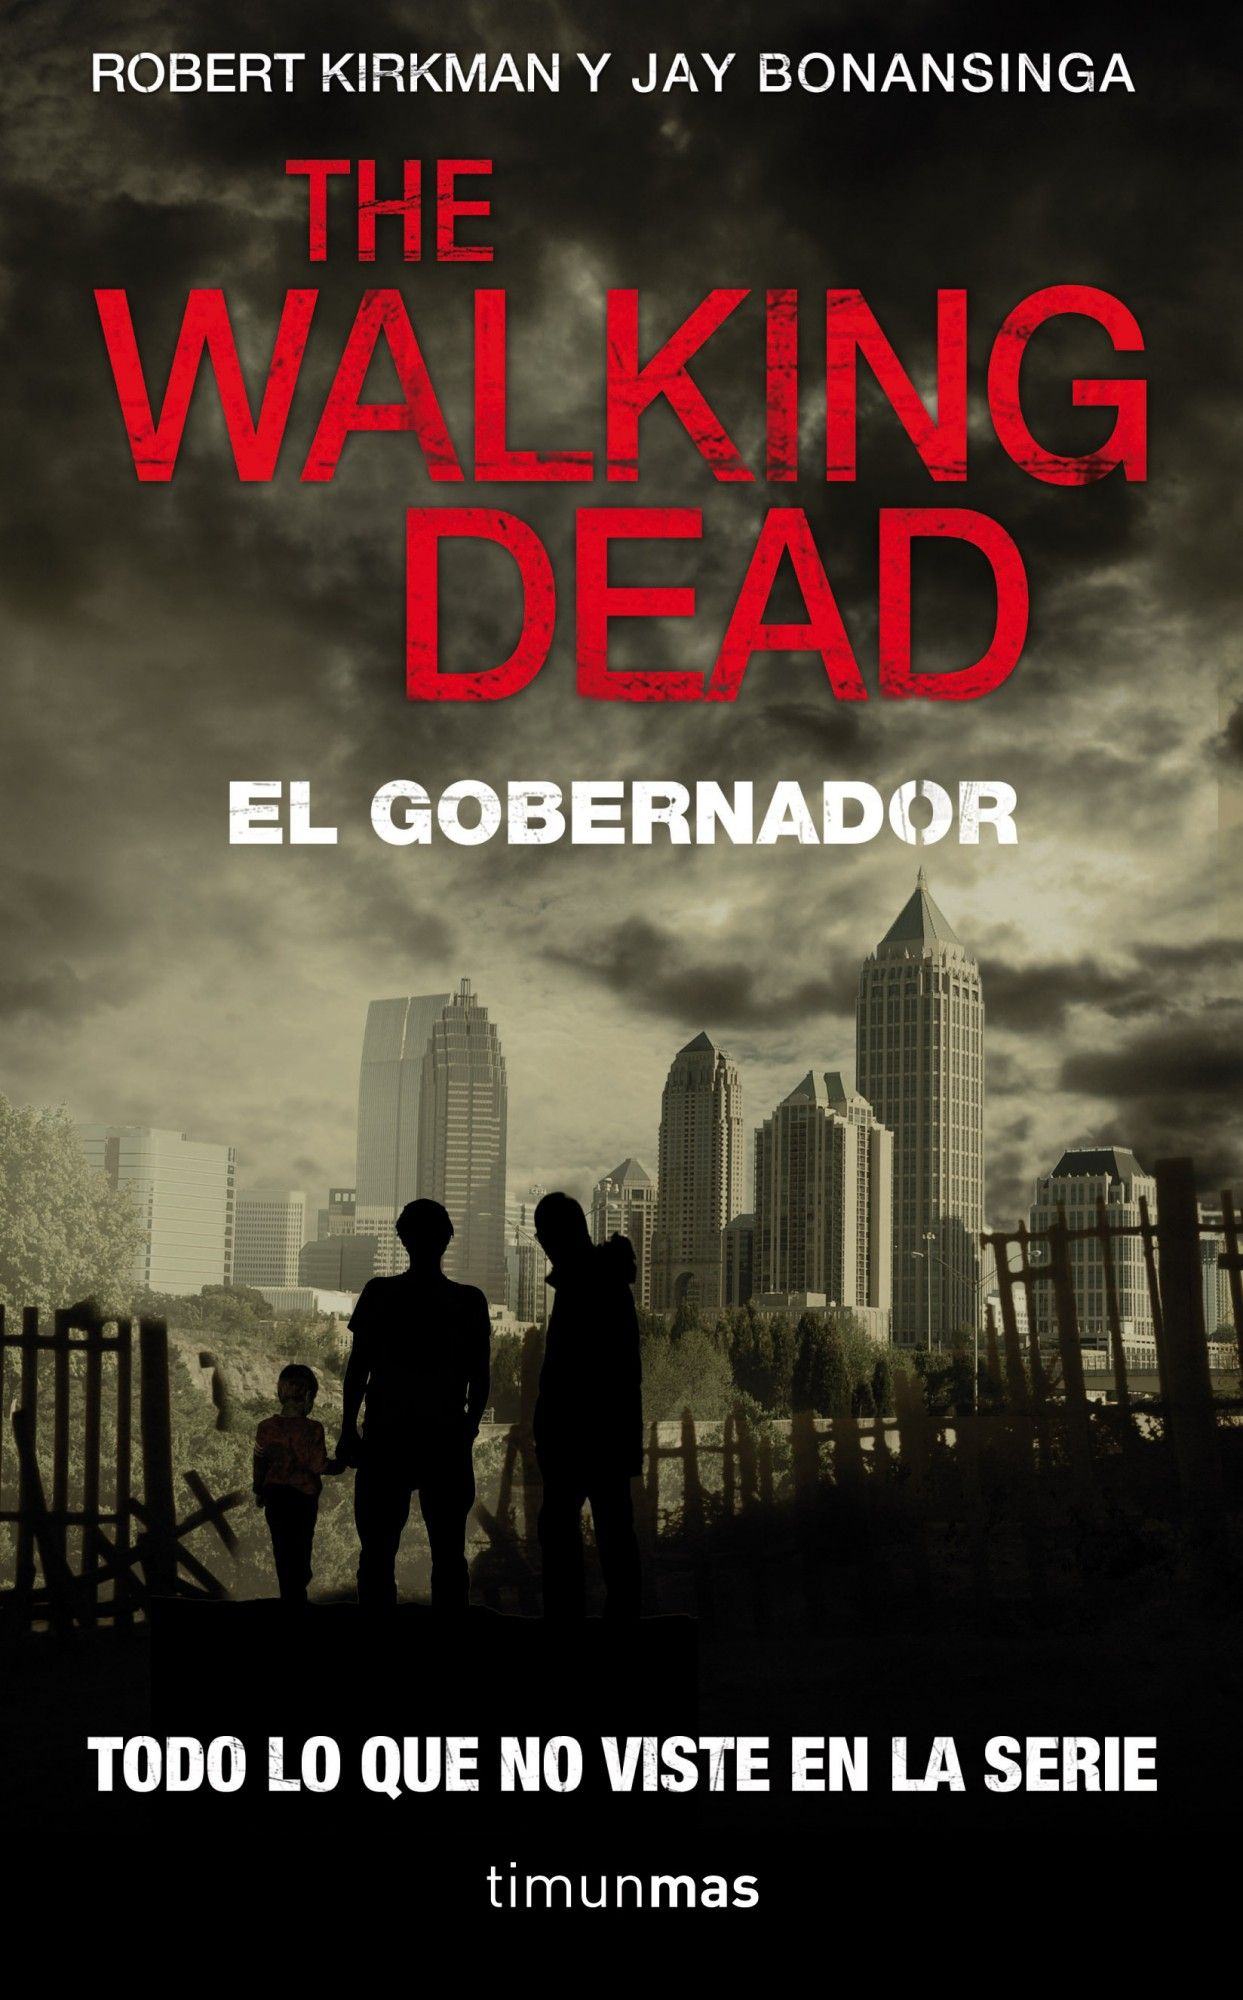 The Walking Dead El Gobernador Walking Dead Series Walking Dead Comic Book The Walking Dead